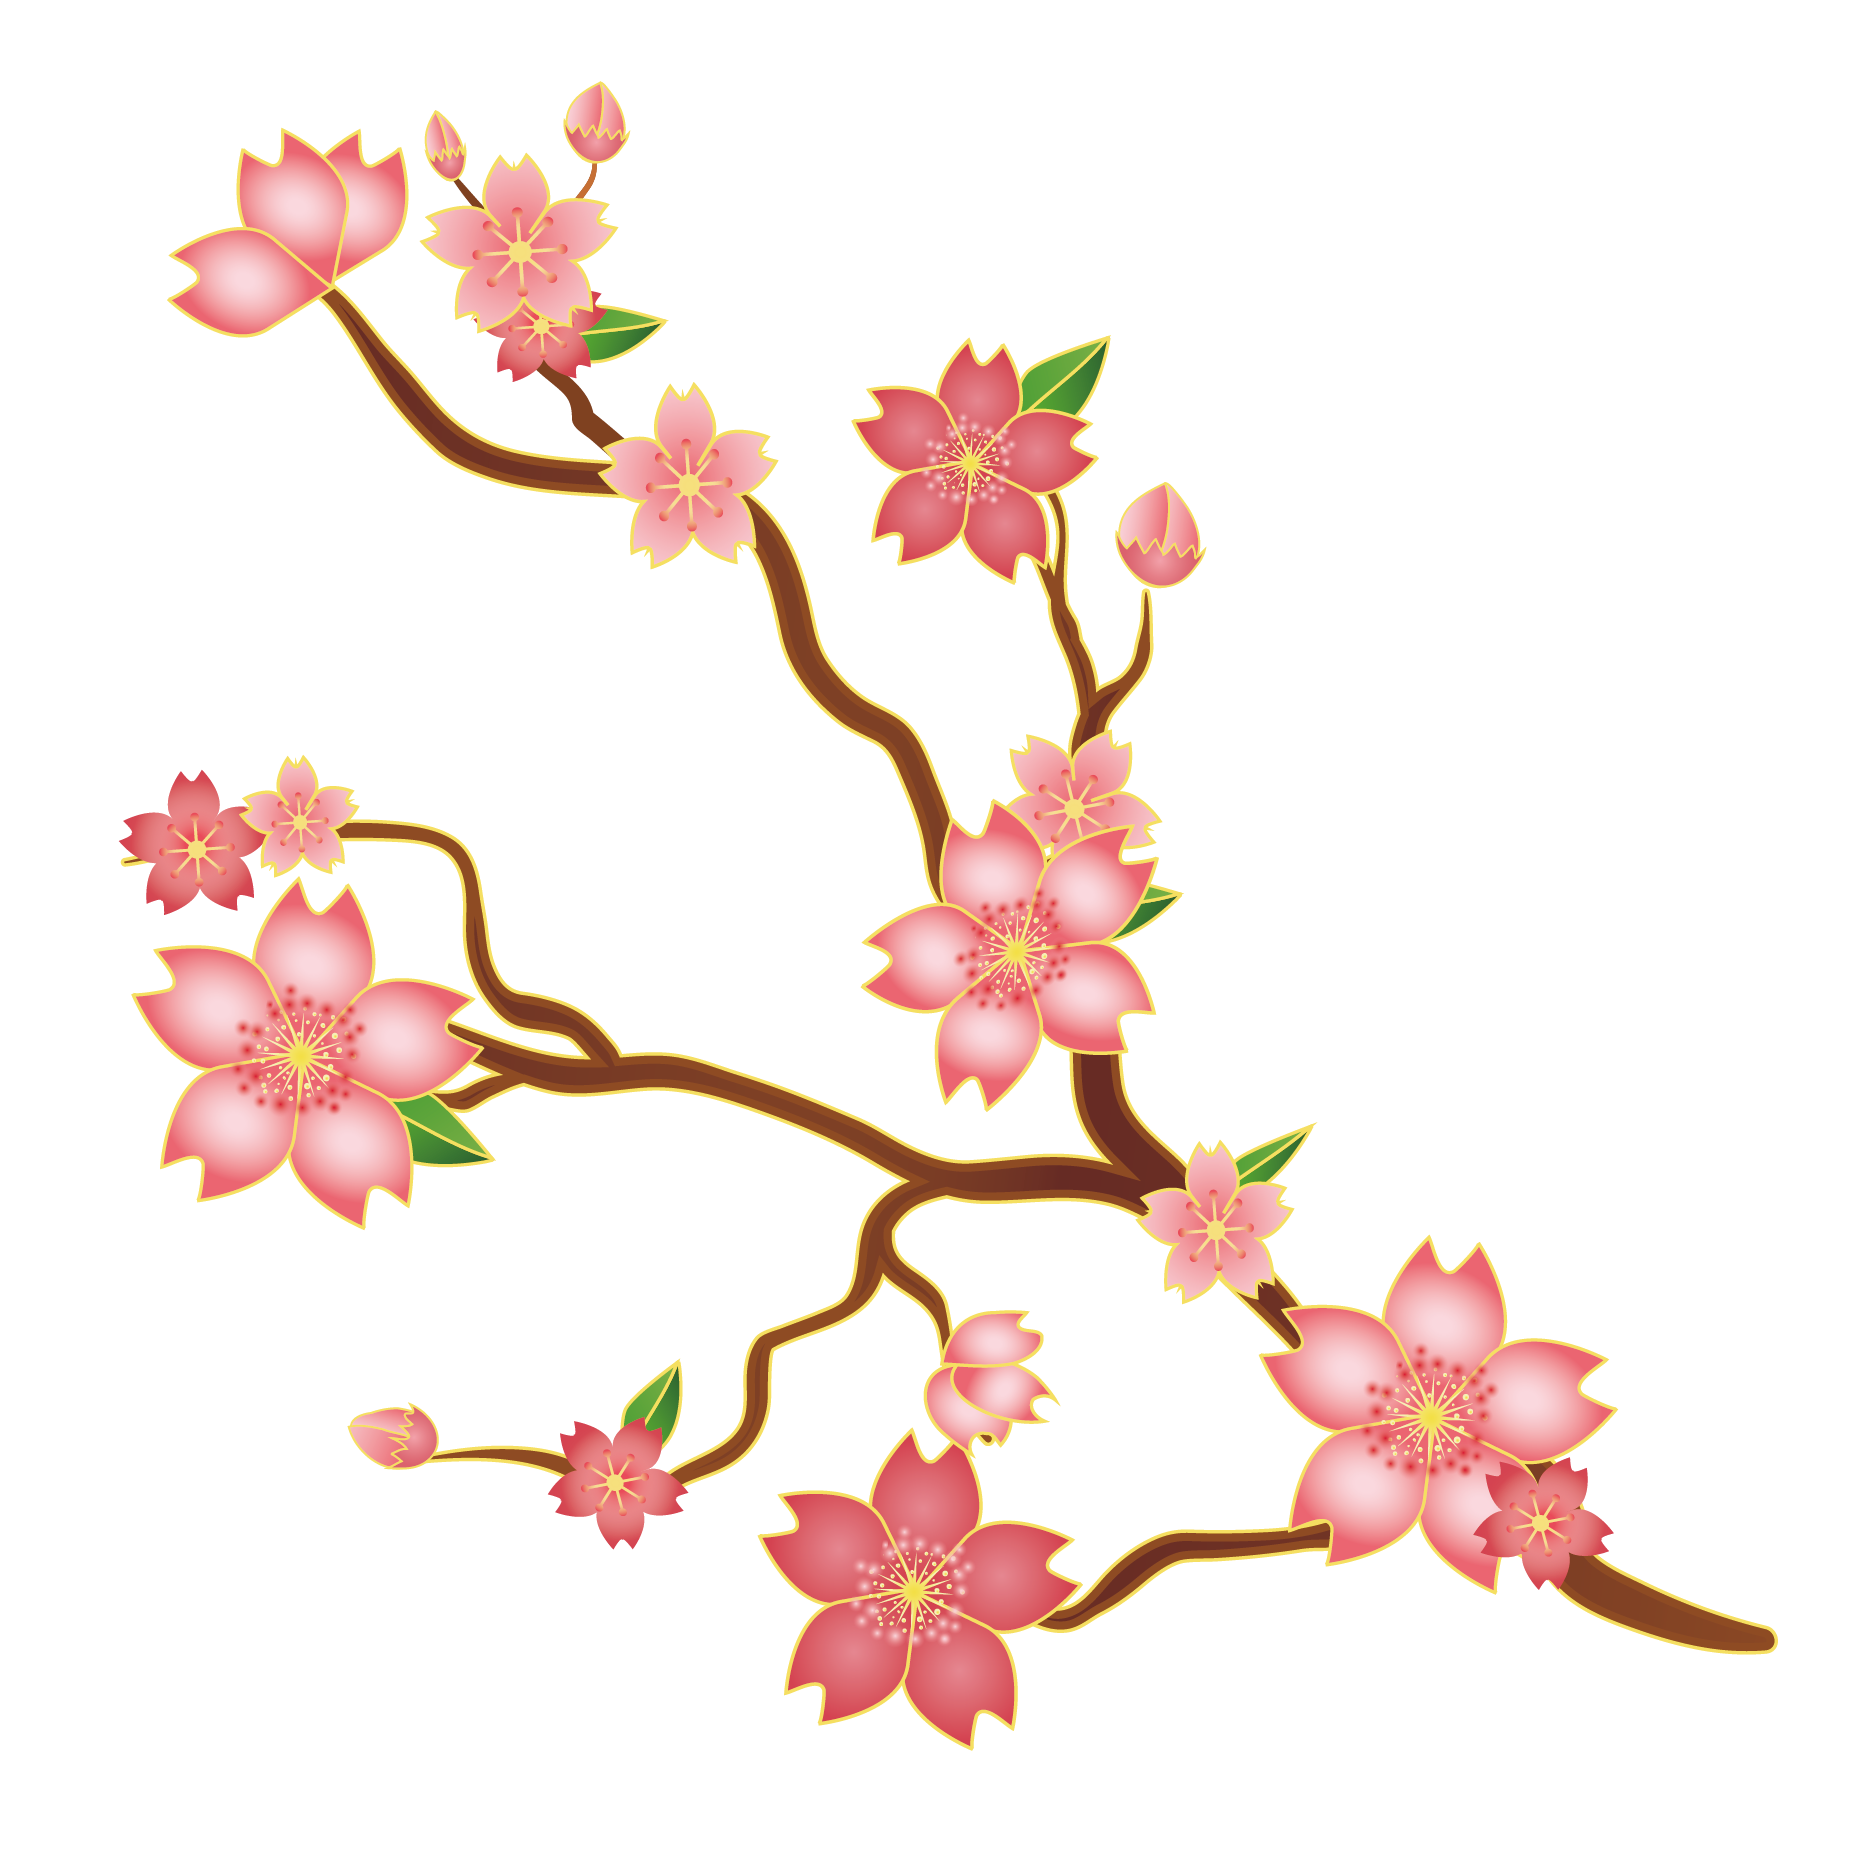 1875x1875 Collection Of Free Branches Clipart Sakura Flower Download On Ui Ex